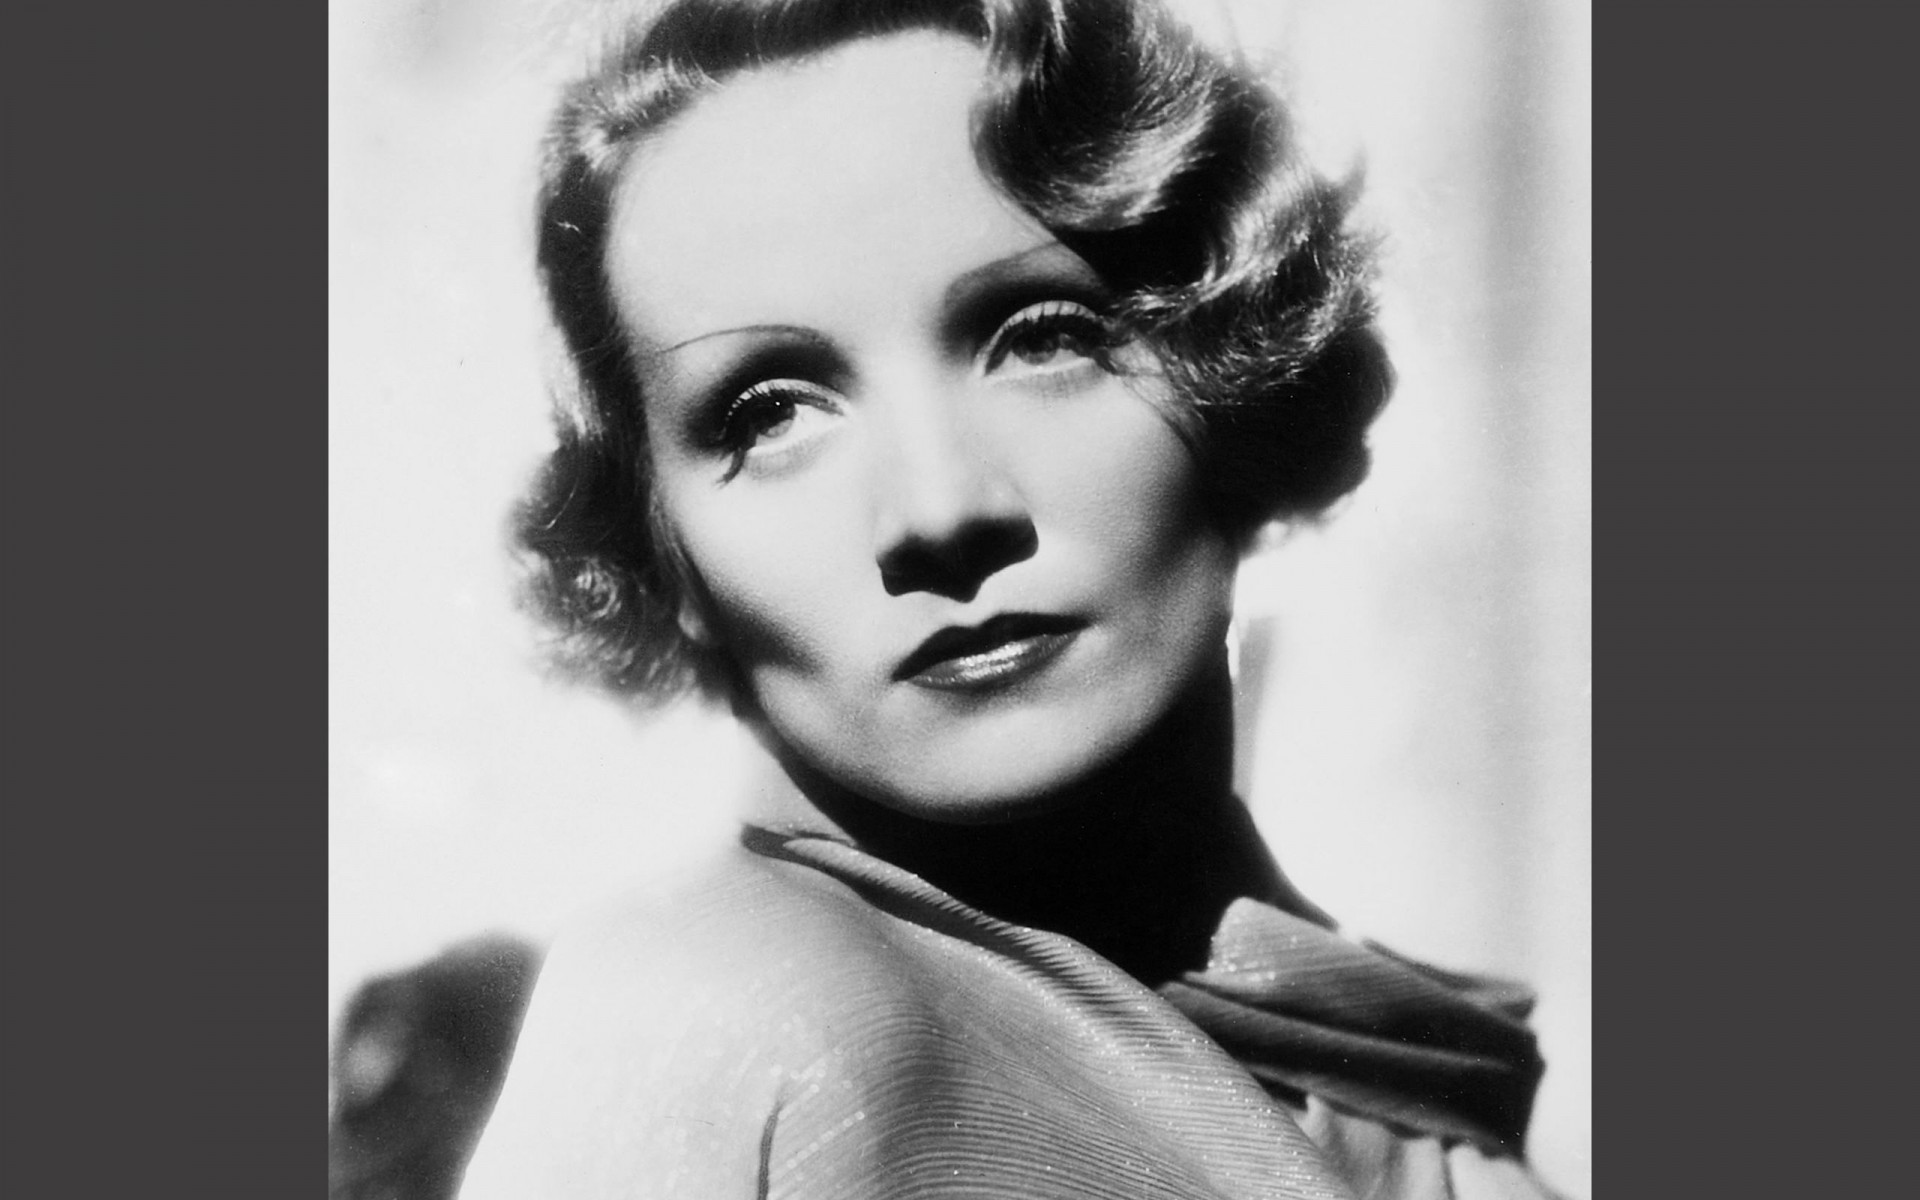 Marlene Dietrich hd wallpaper in Celebrities Wallpaper